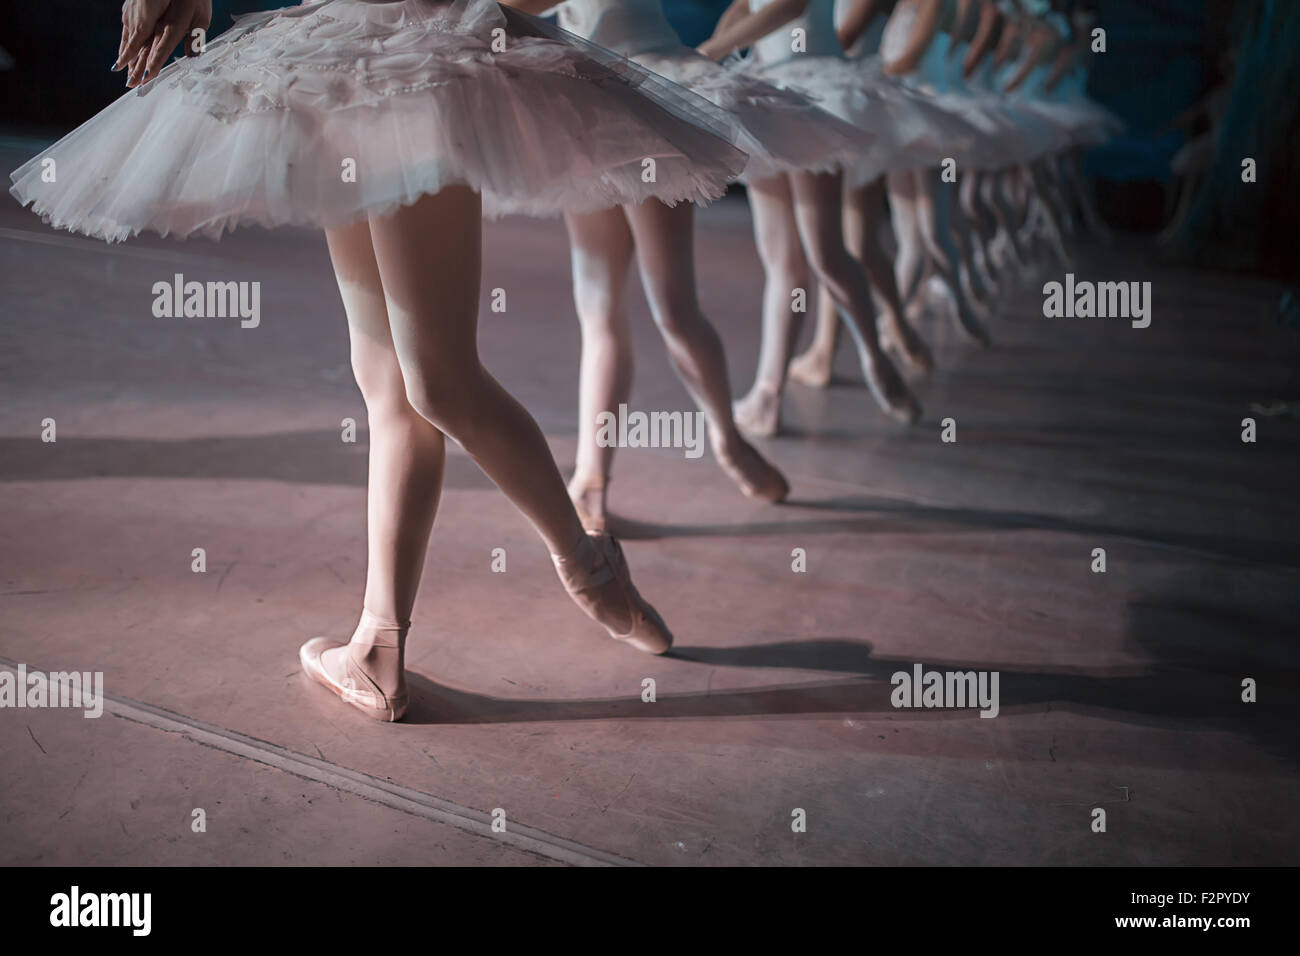 Dancers in white tutu synchronized dancing - Stock Image